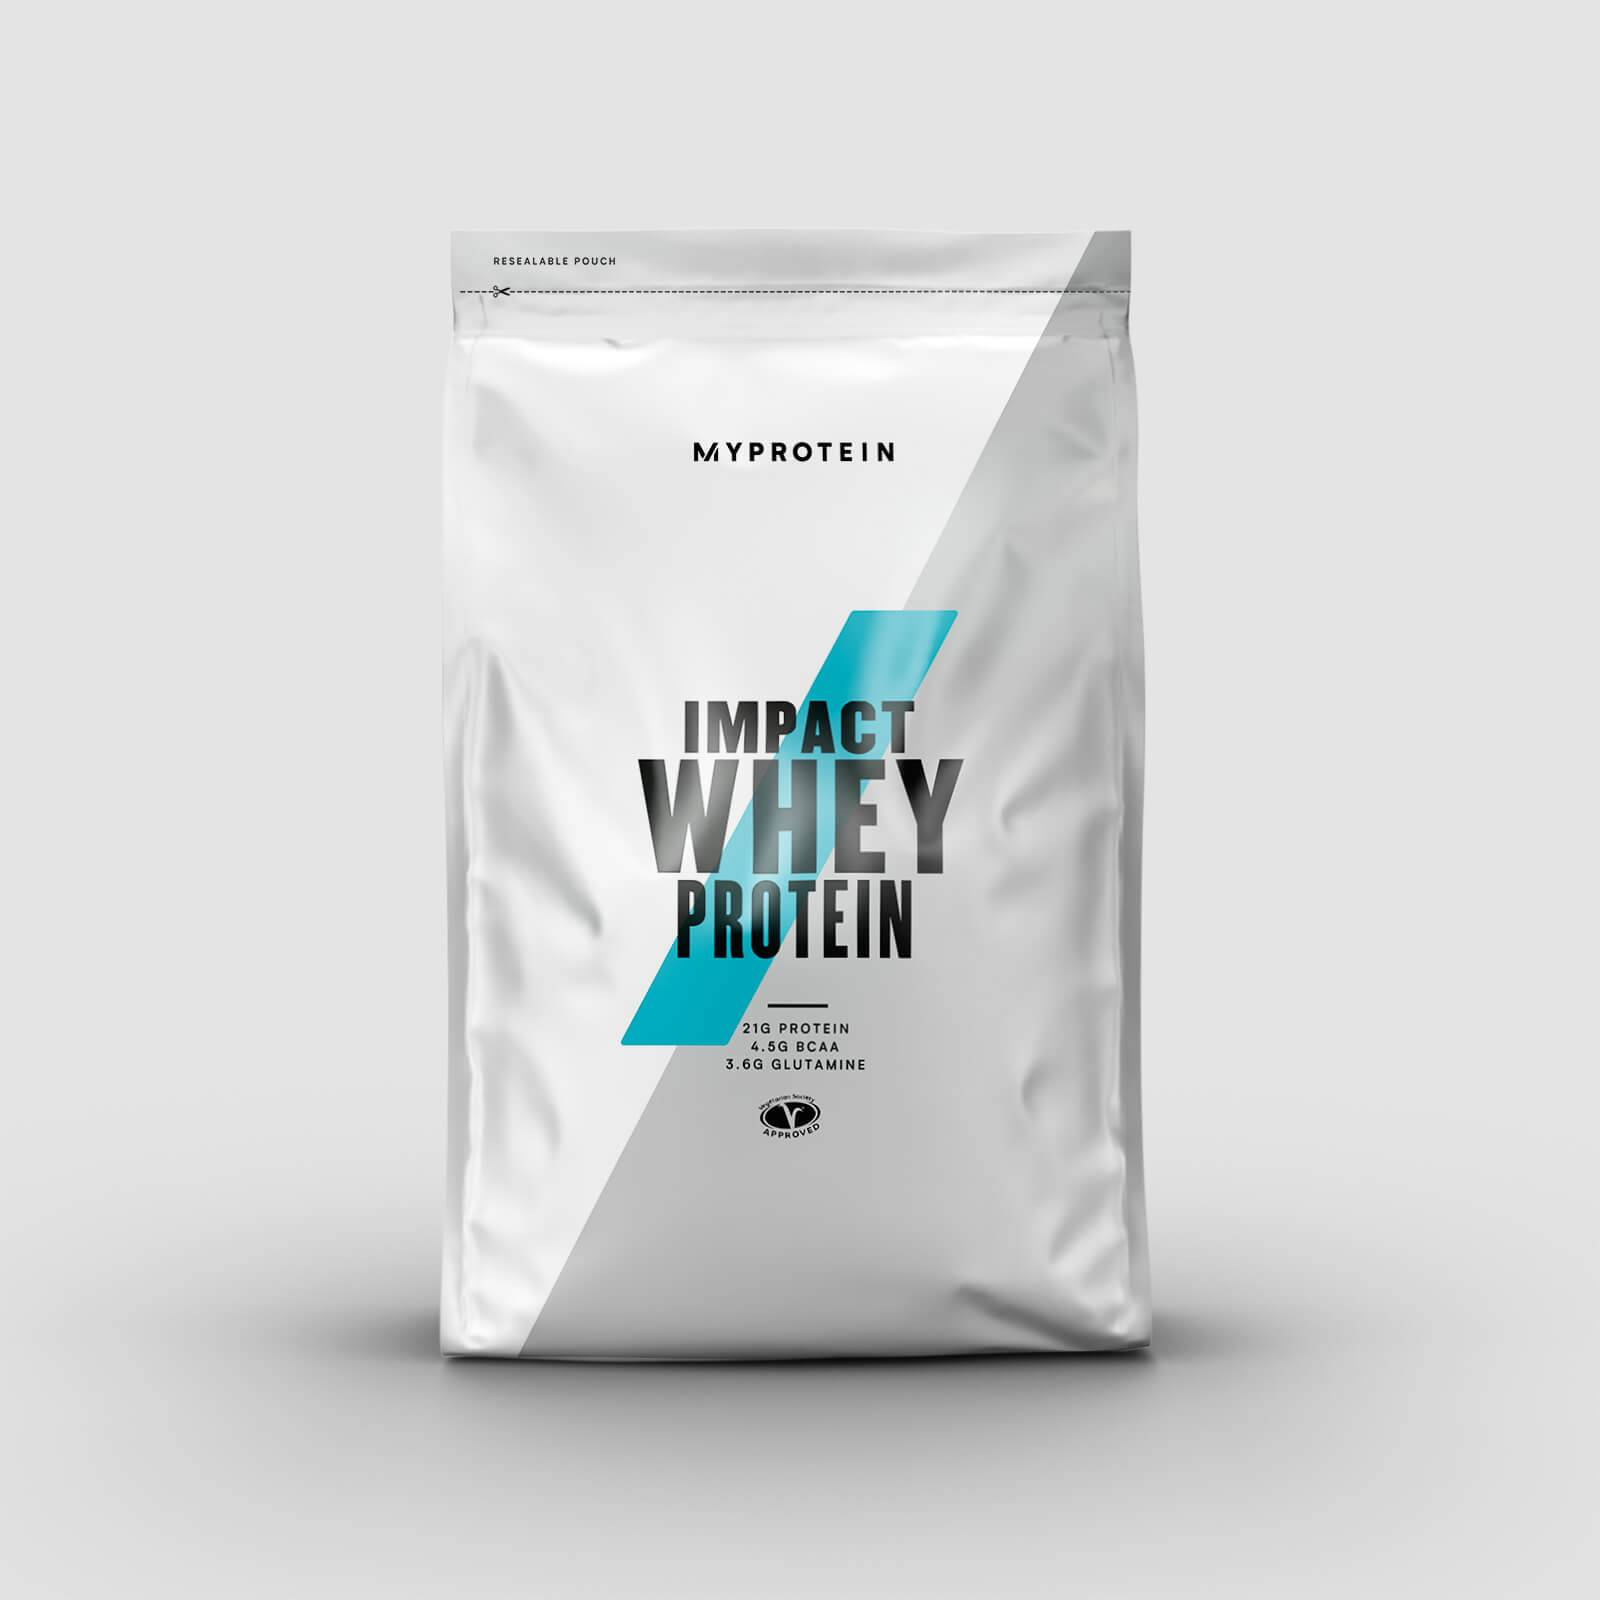 Myprotein Impact Whey Protein - 2.5kg - Chocolat Onctueux